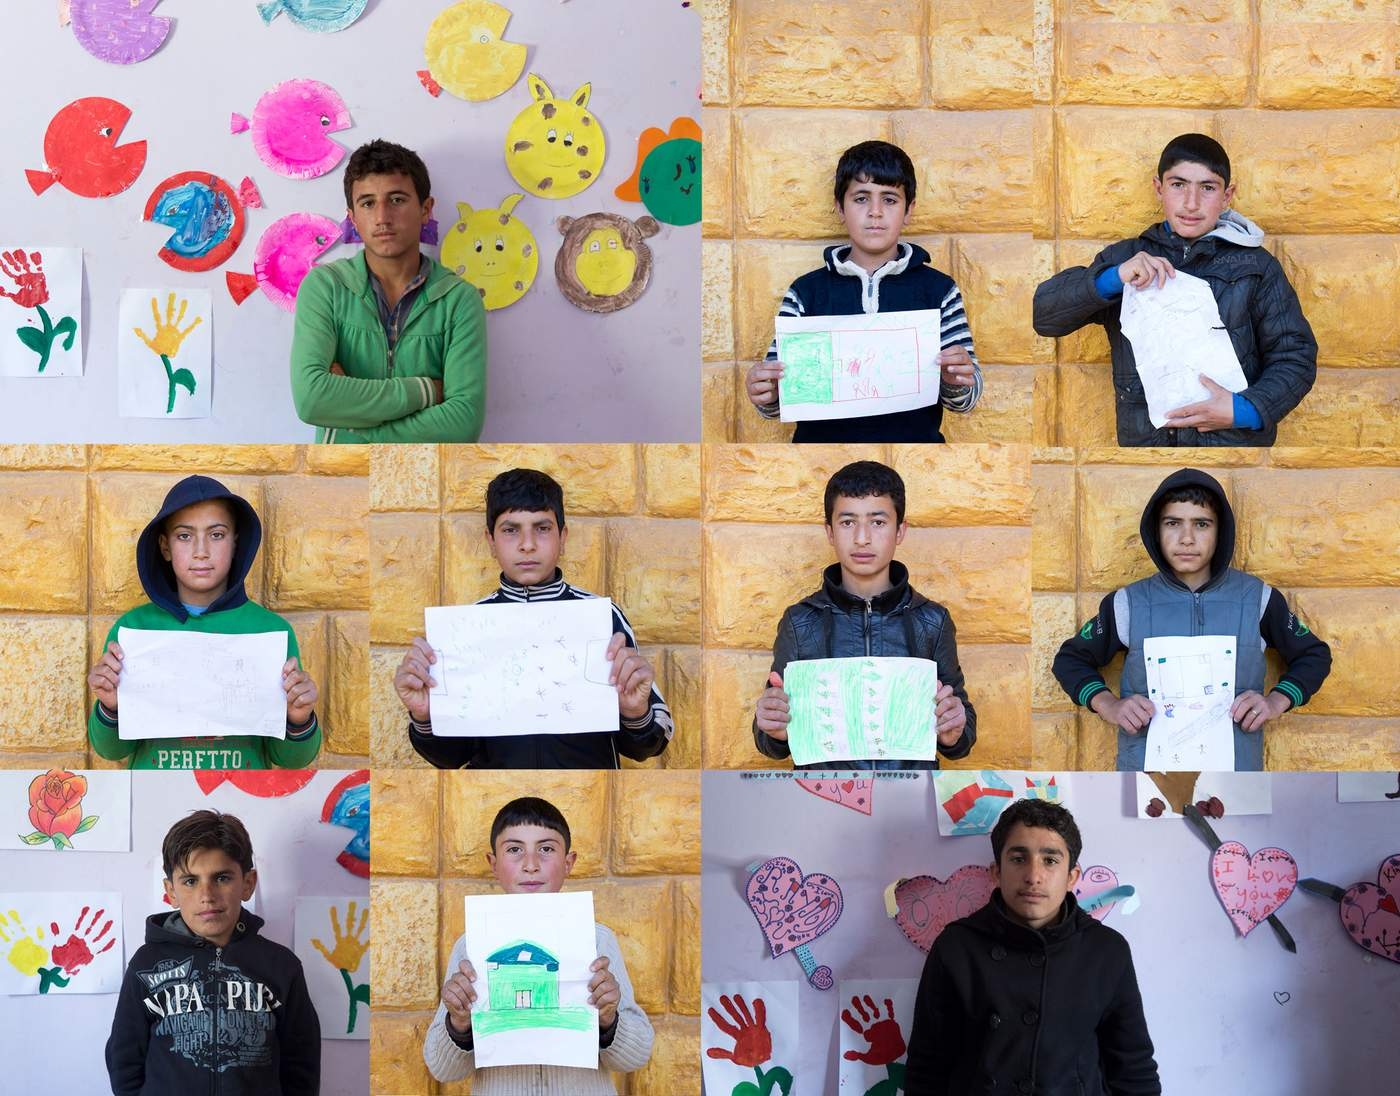 For many Syrian refugee children their safe place is their school classroom. Plan International provide anti-gender violence and protection activities through schools projects in Lebanon © Plan International Australia